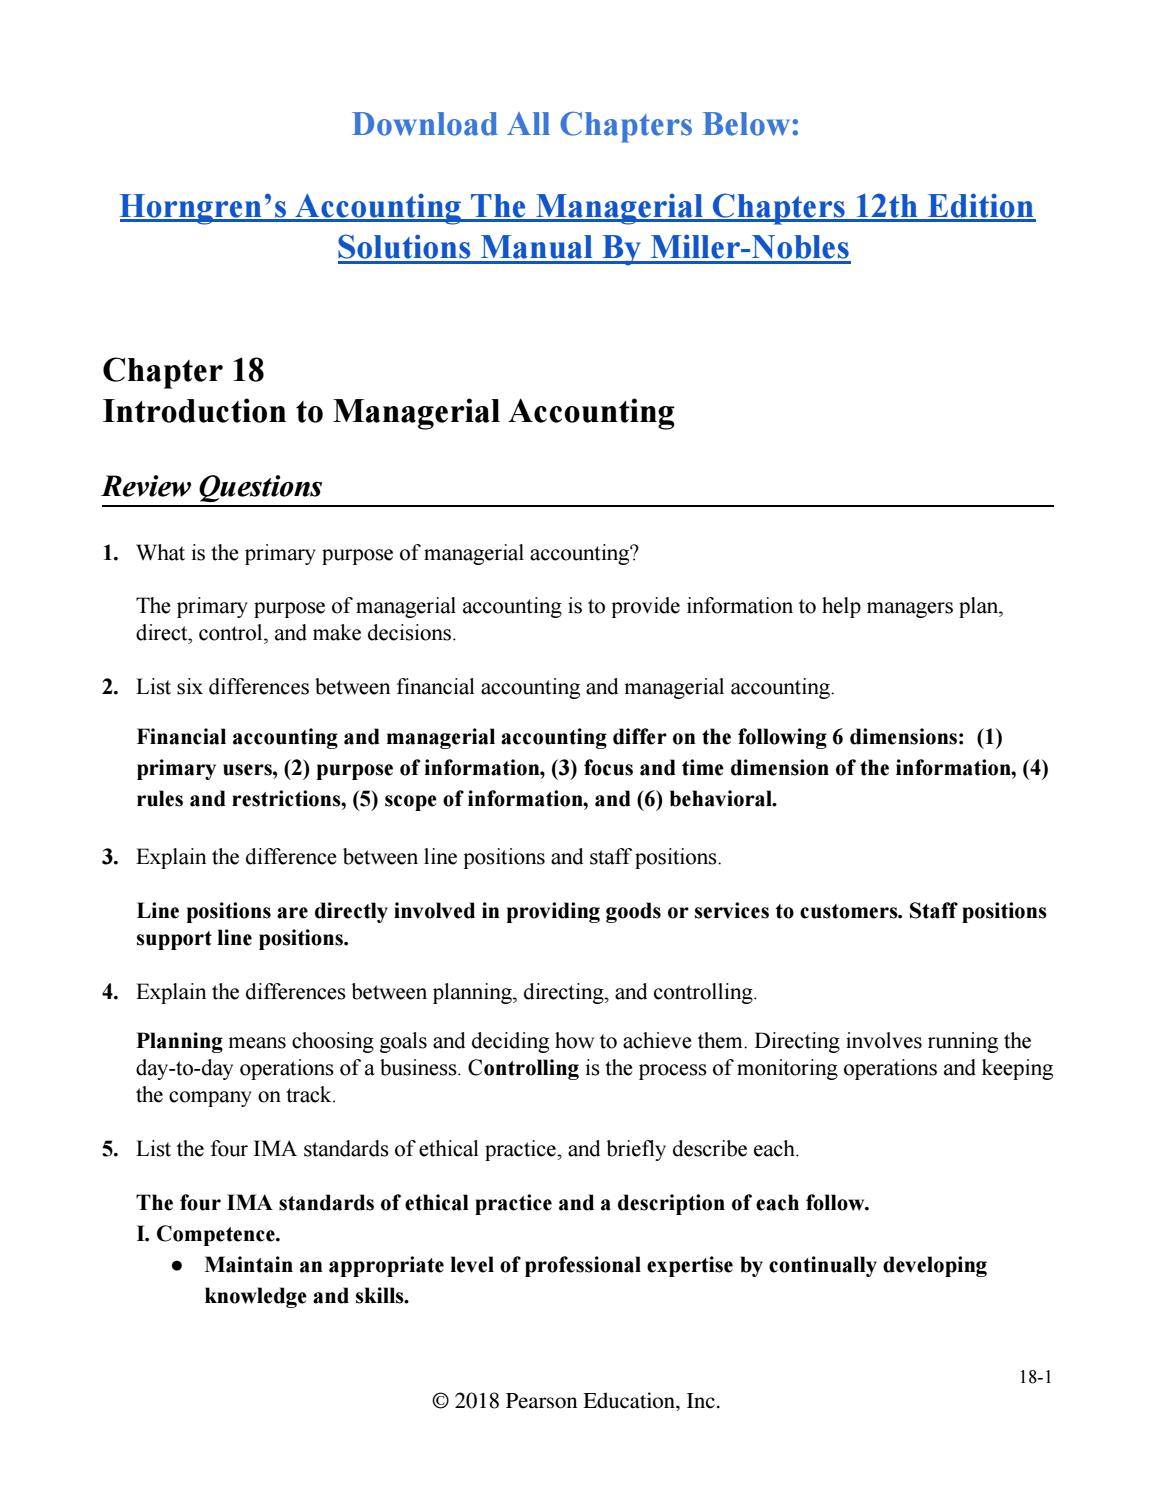 Horngrens Accounting 12th Edition Pdf Free